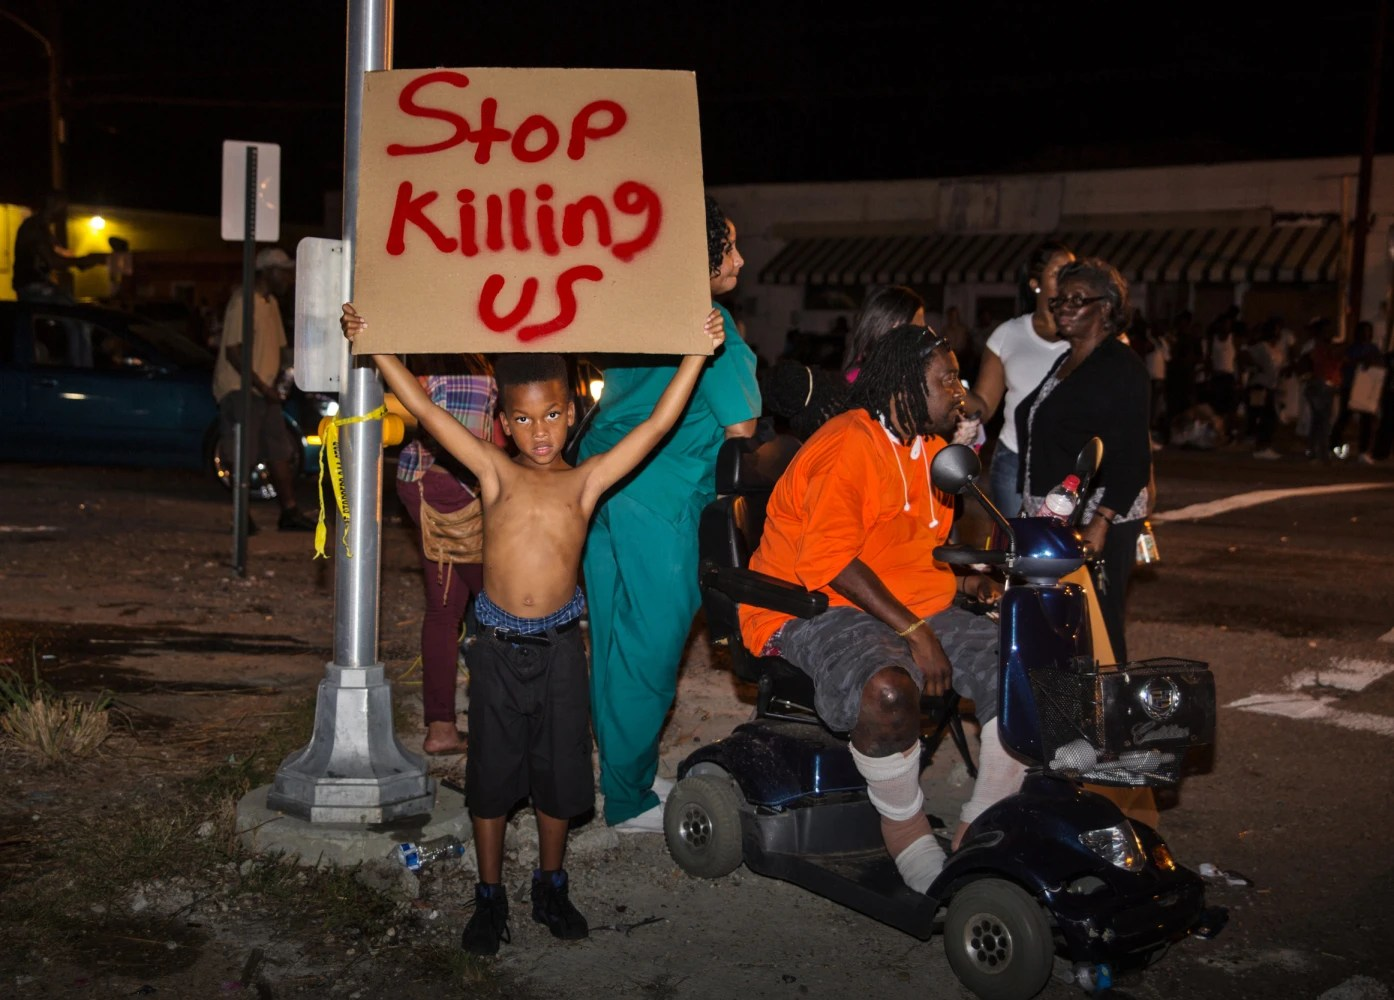 Louisiana officers in black man's shooting will not be charged: newspapers